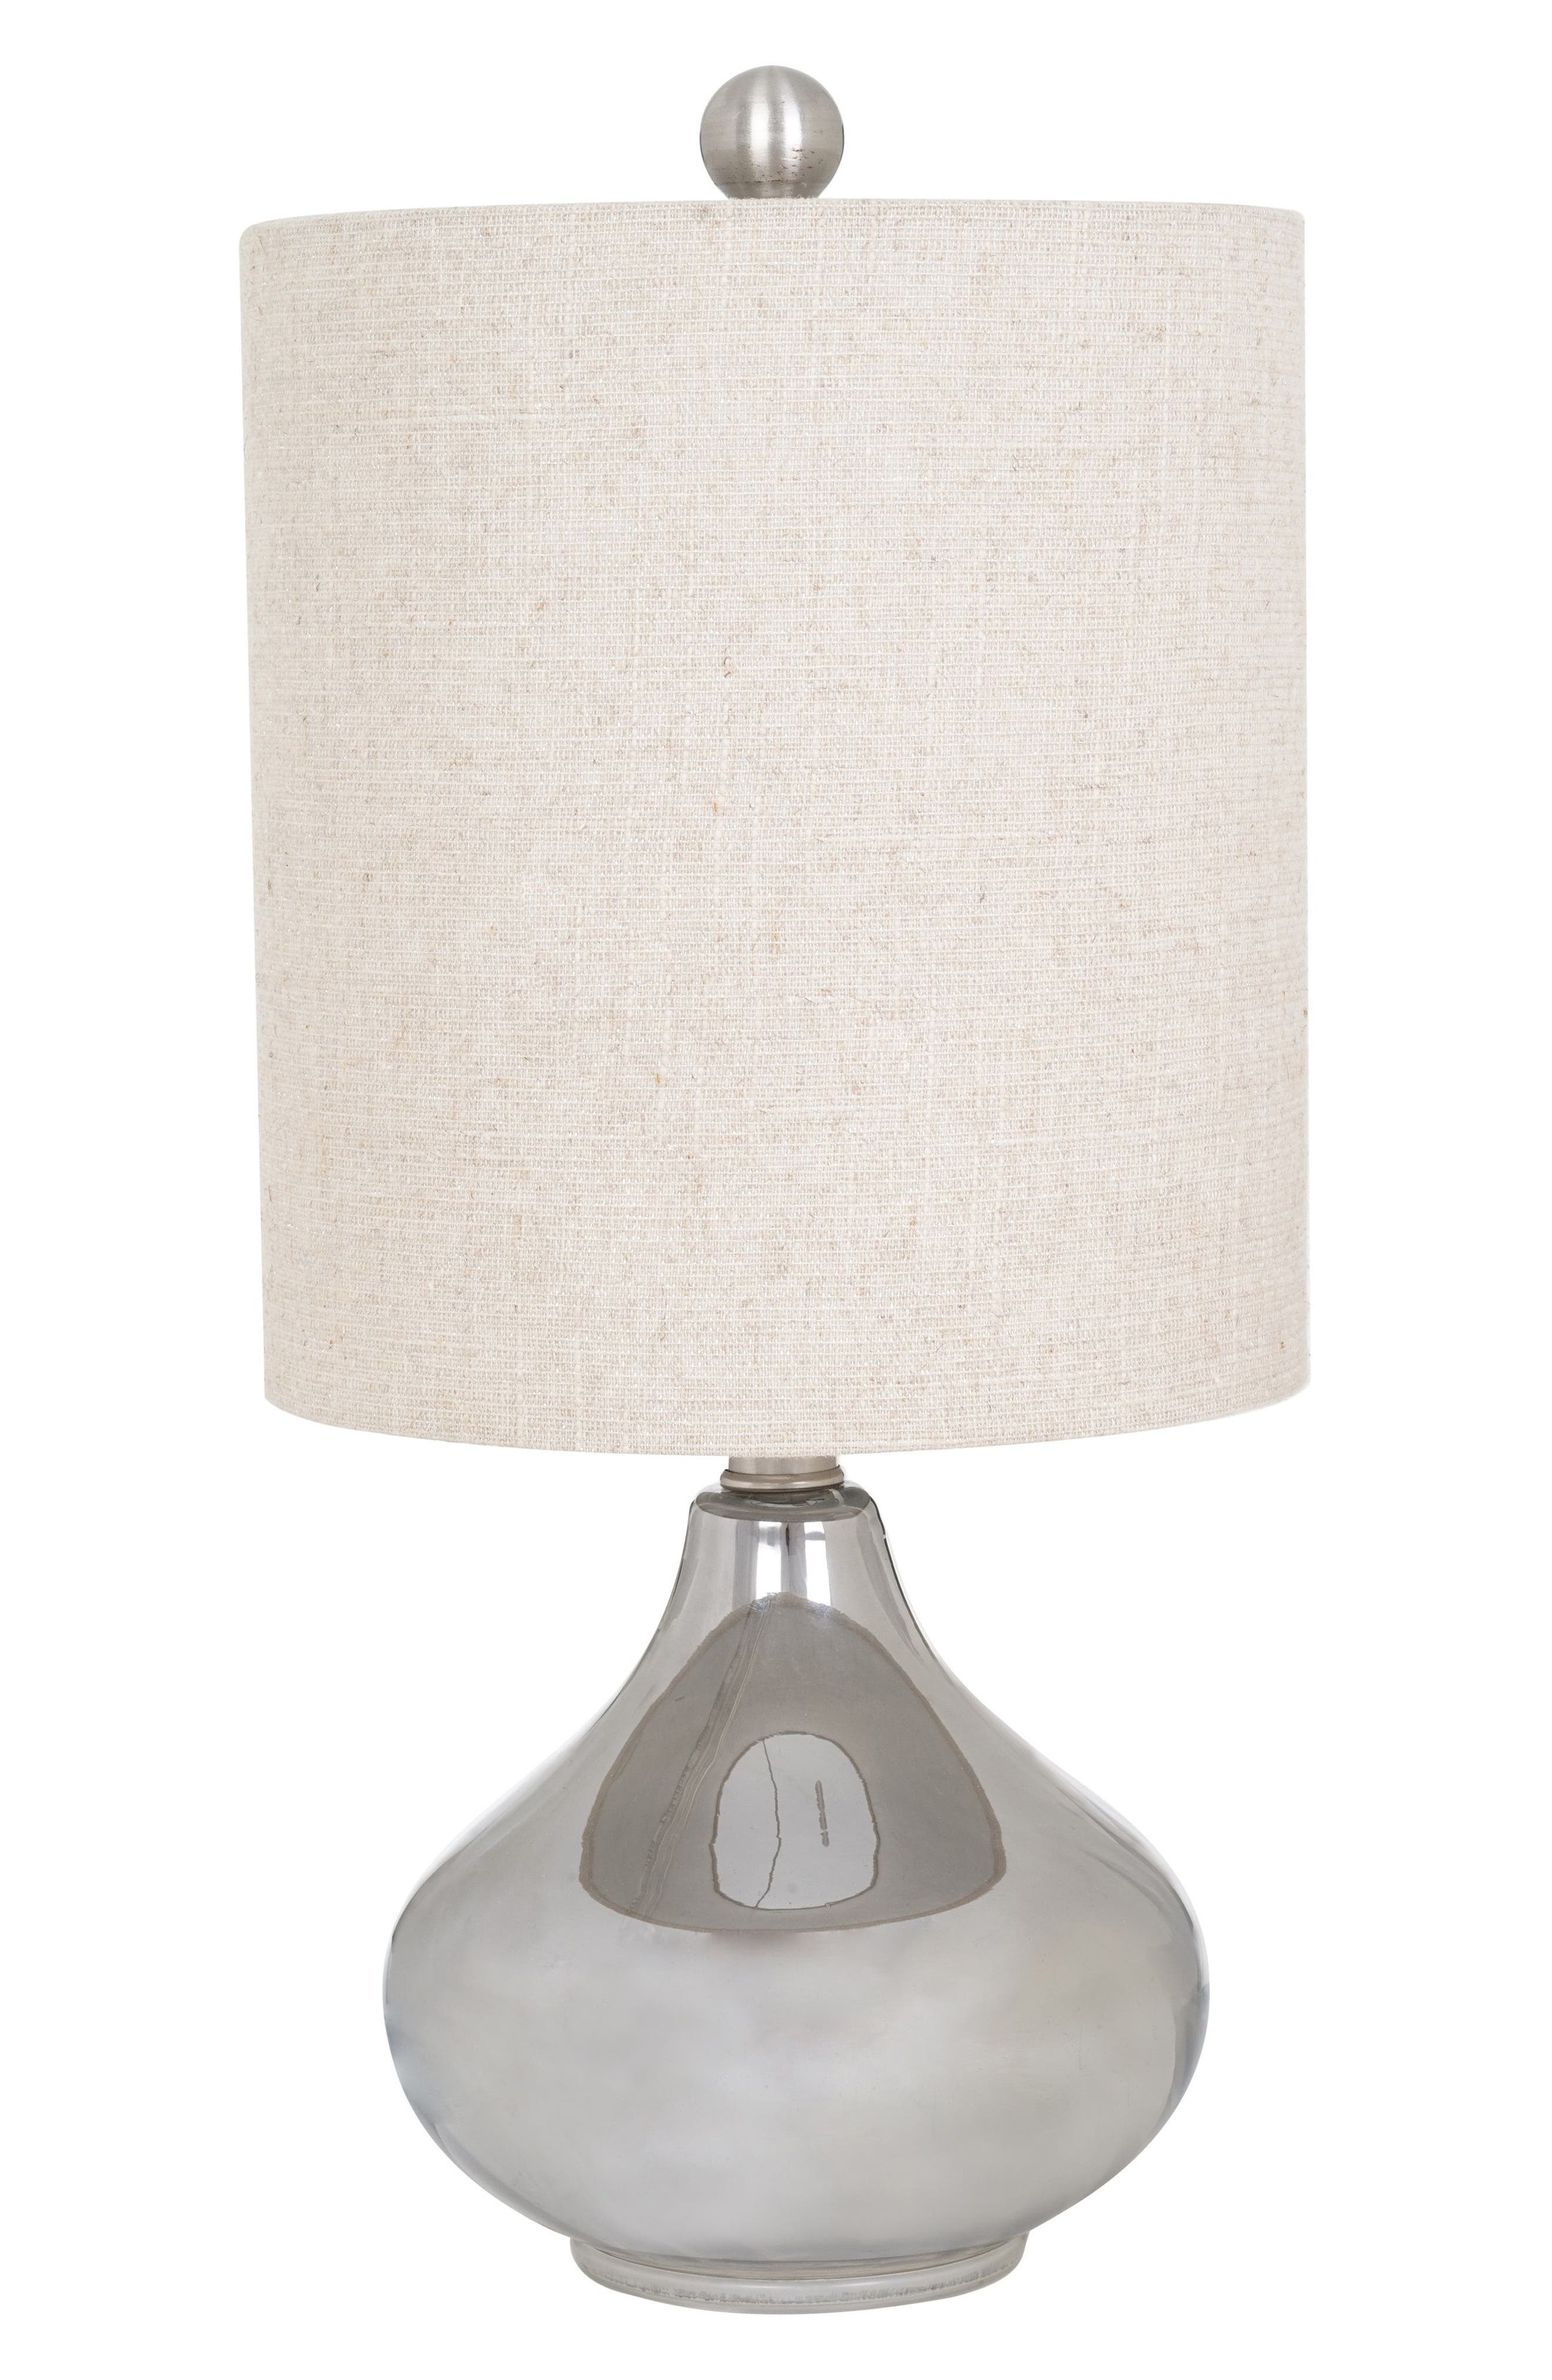 Alternate Image 1 Selected - JAlexander Lighting Chrome Table Lamp